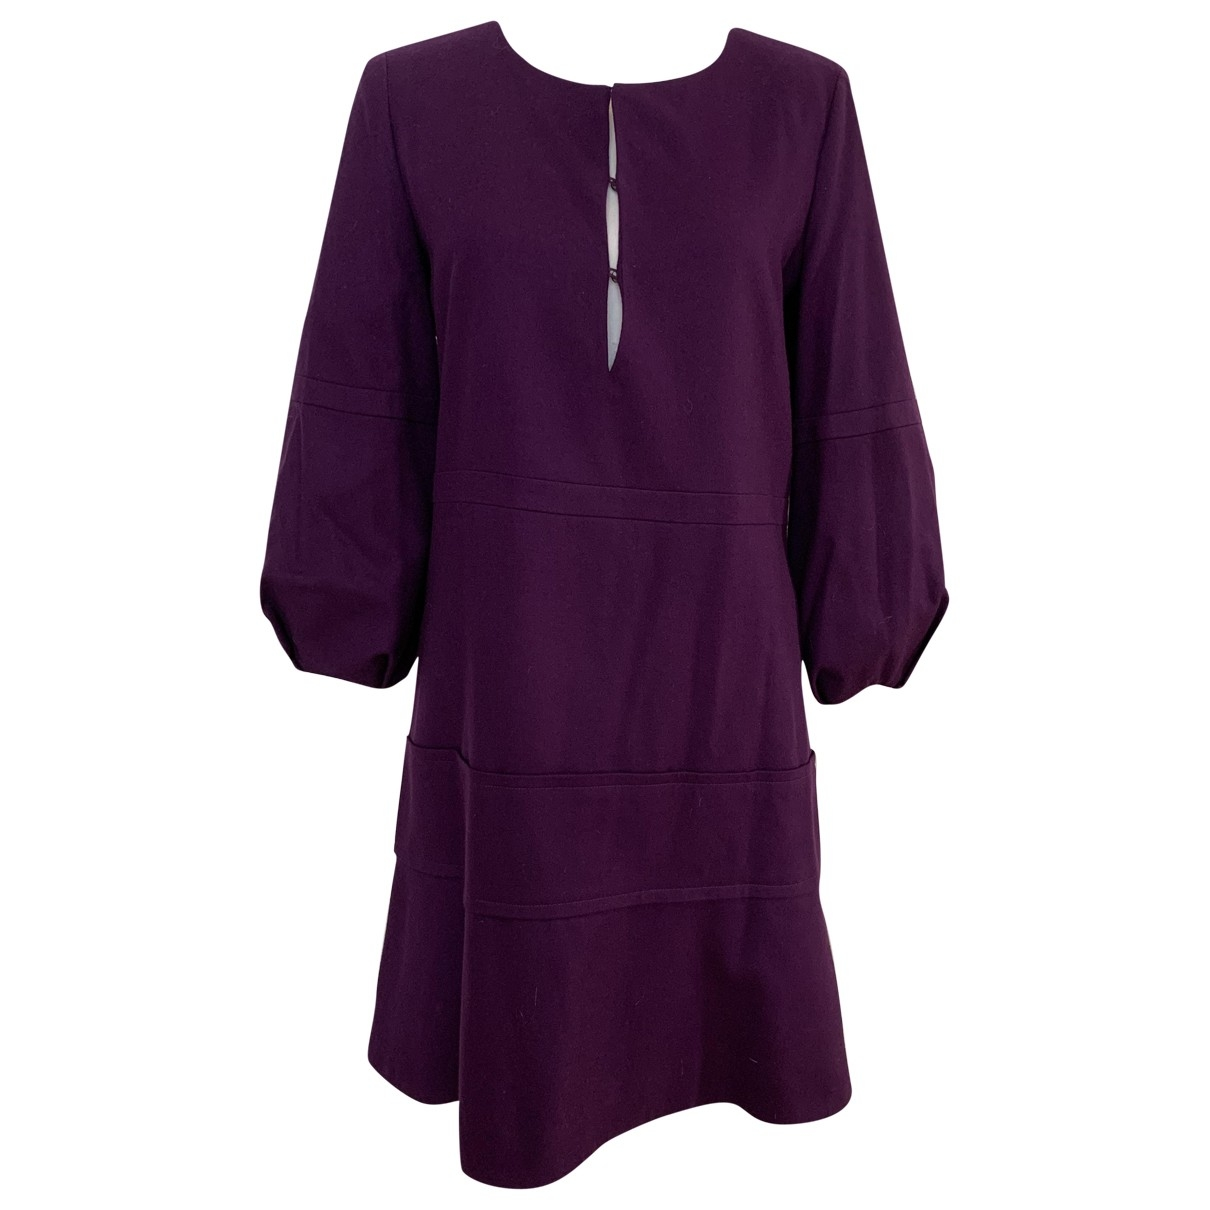 Chloé \N Purple Wool dress for Women 38 FR